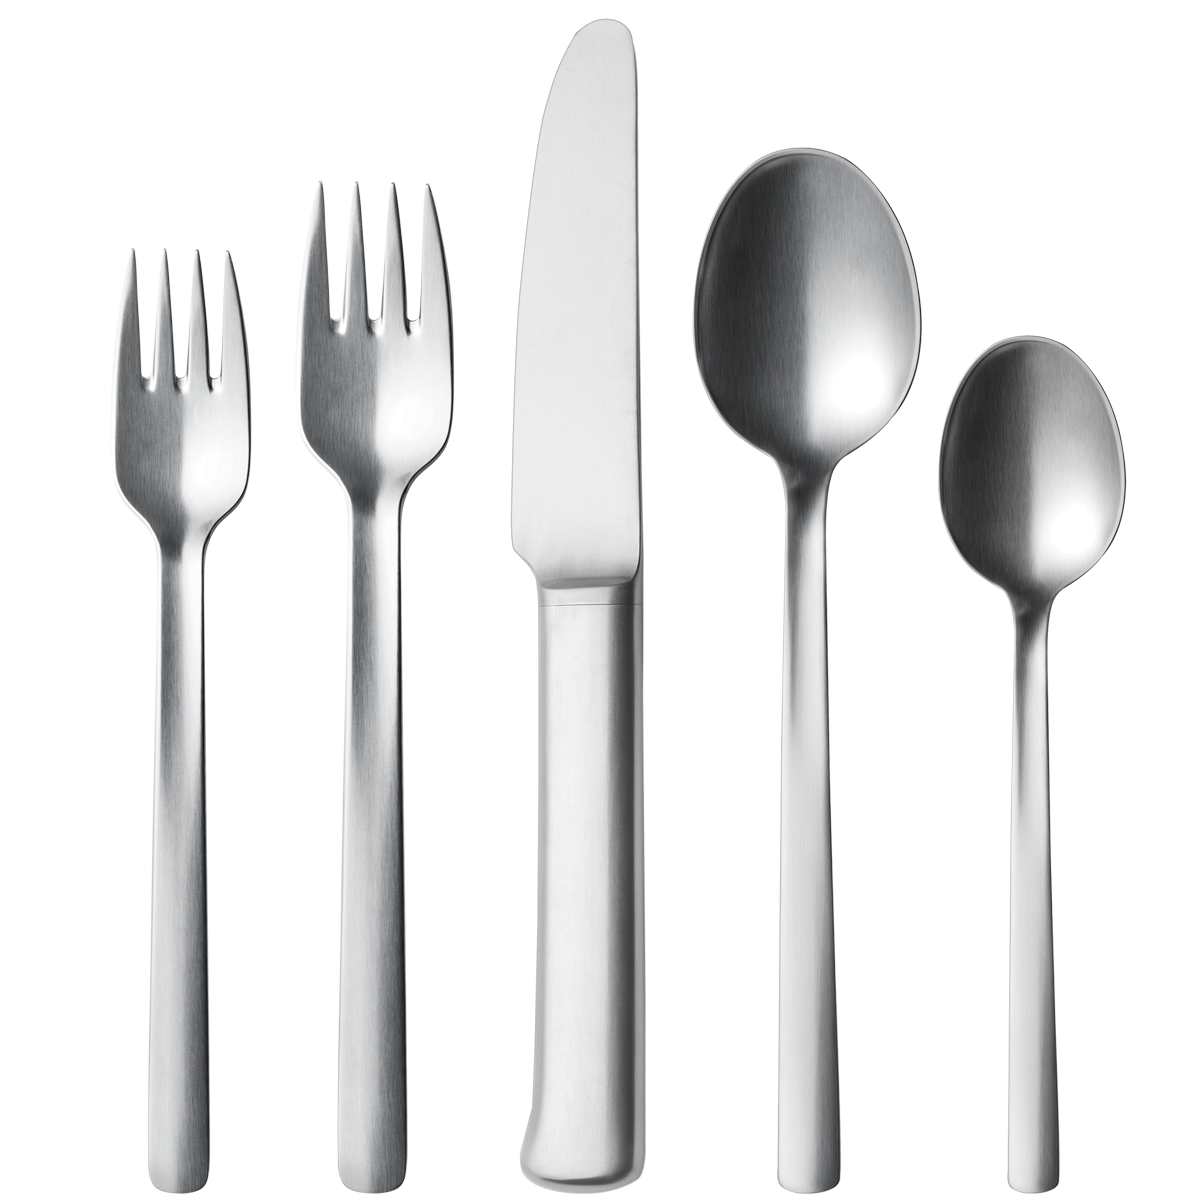 Png transparent images all. Knife clipart silverware plate